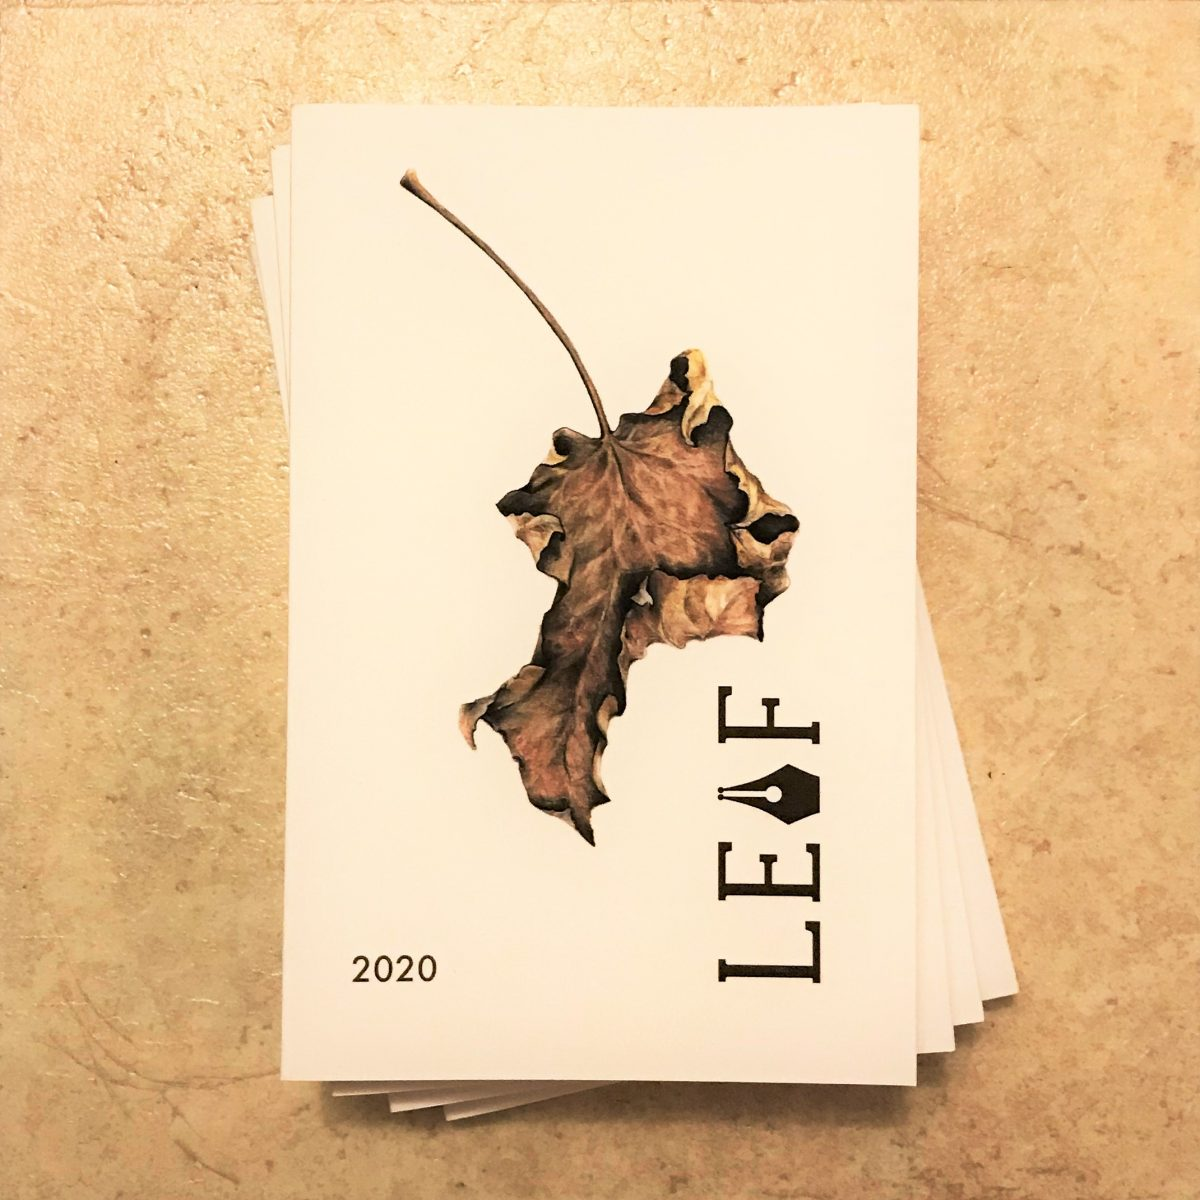 Leaf 2020 is available!